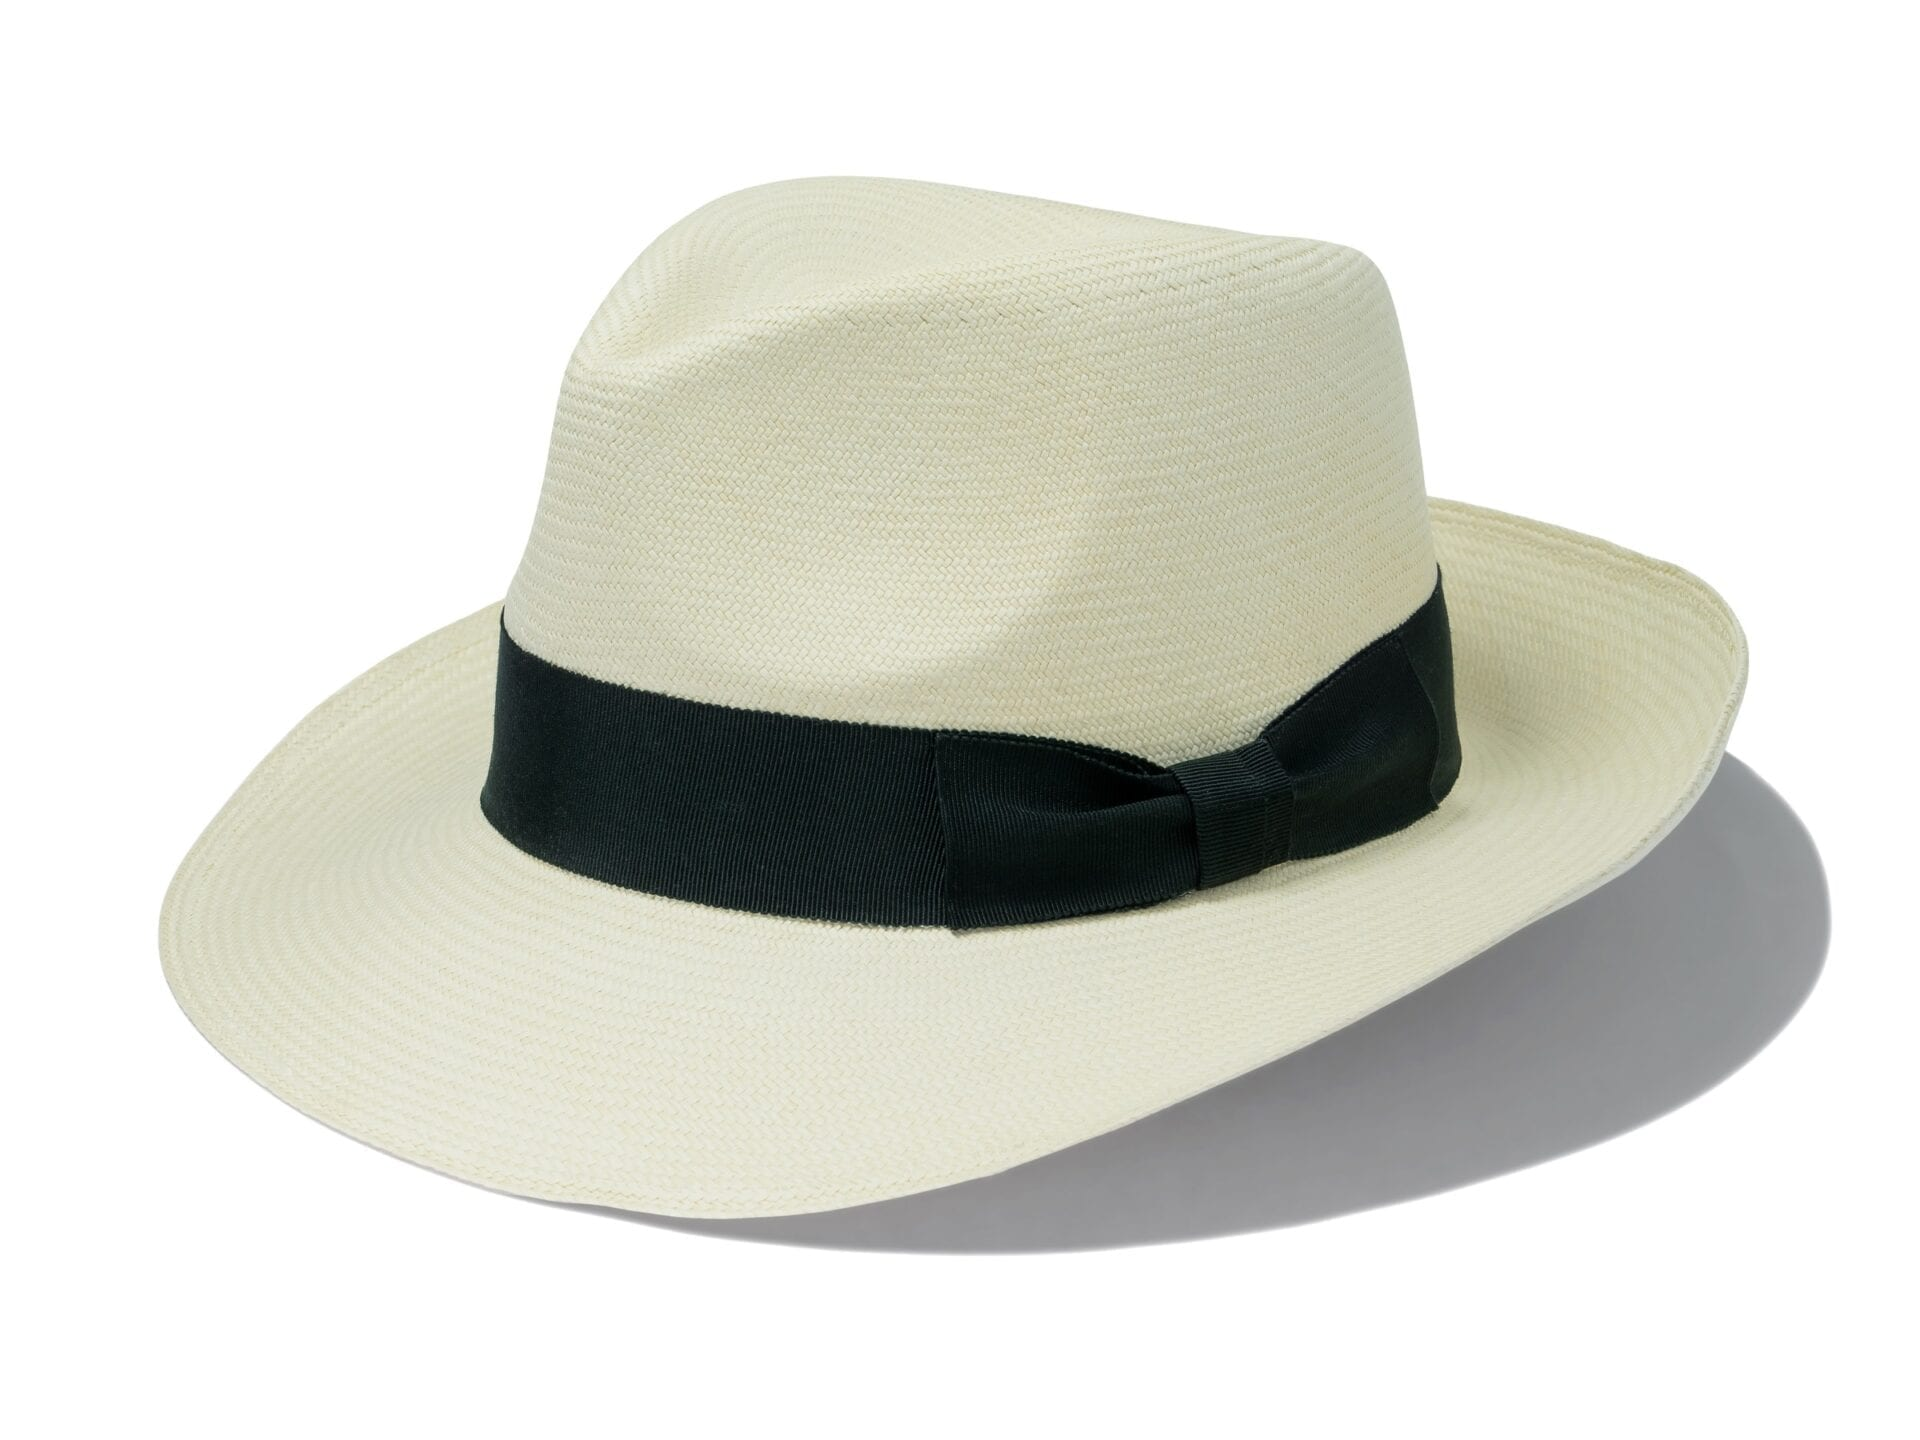 Men's_teardrop_fedora_panama_hat